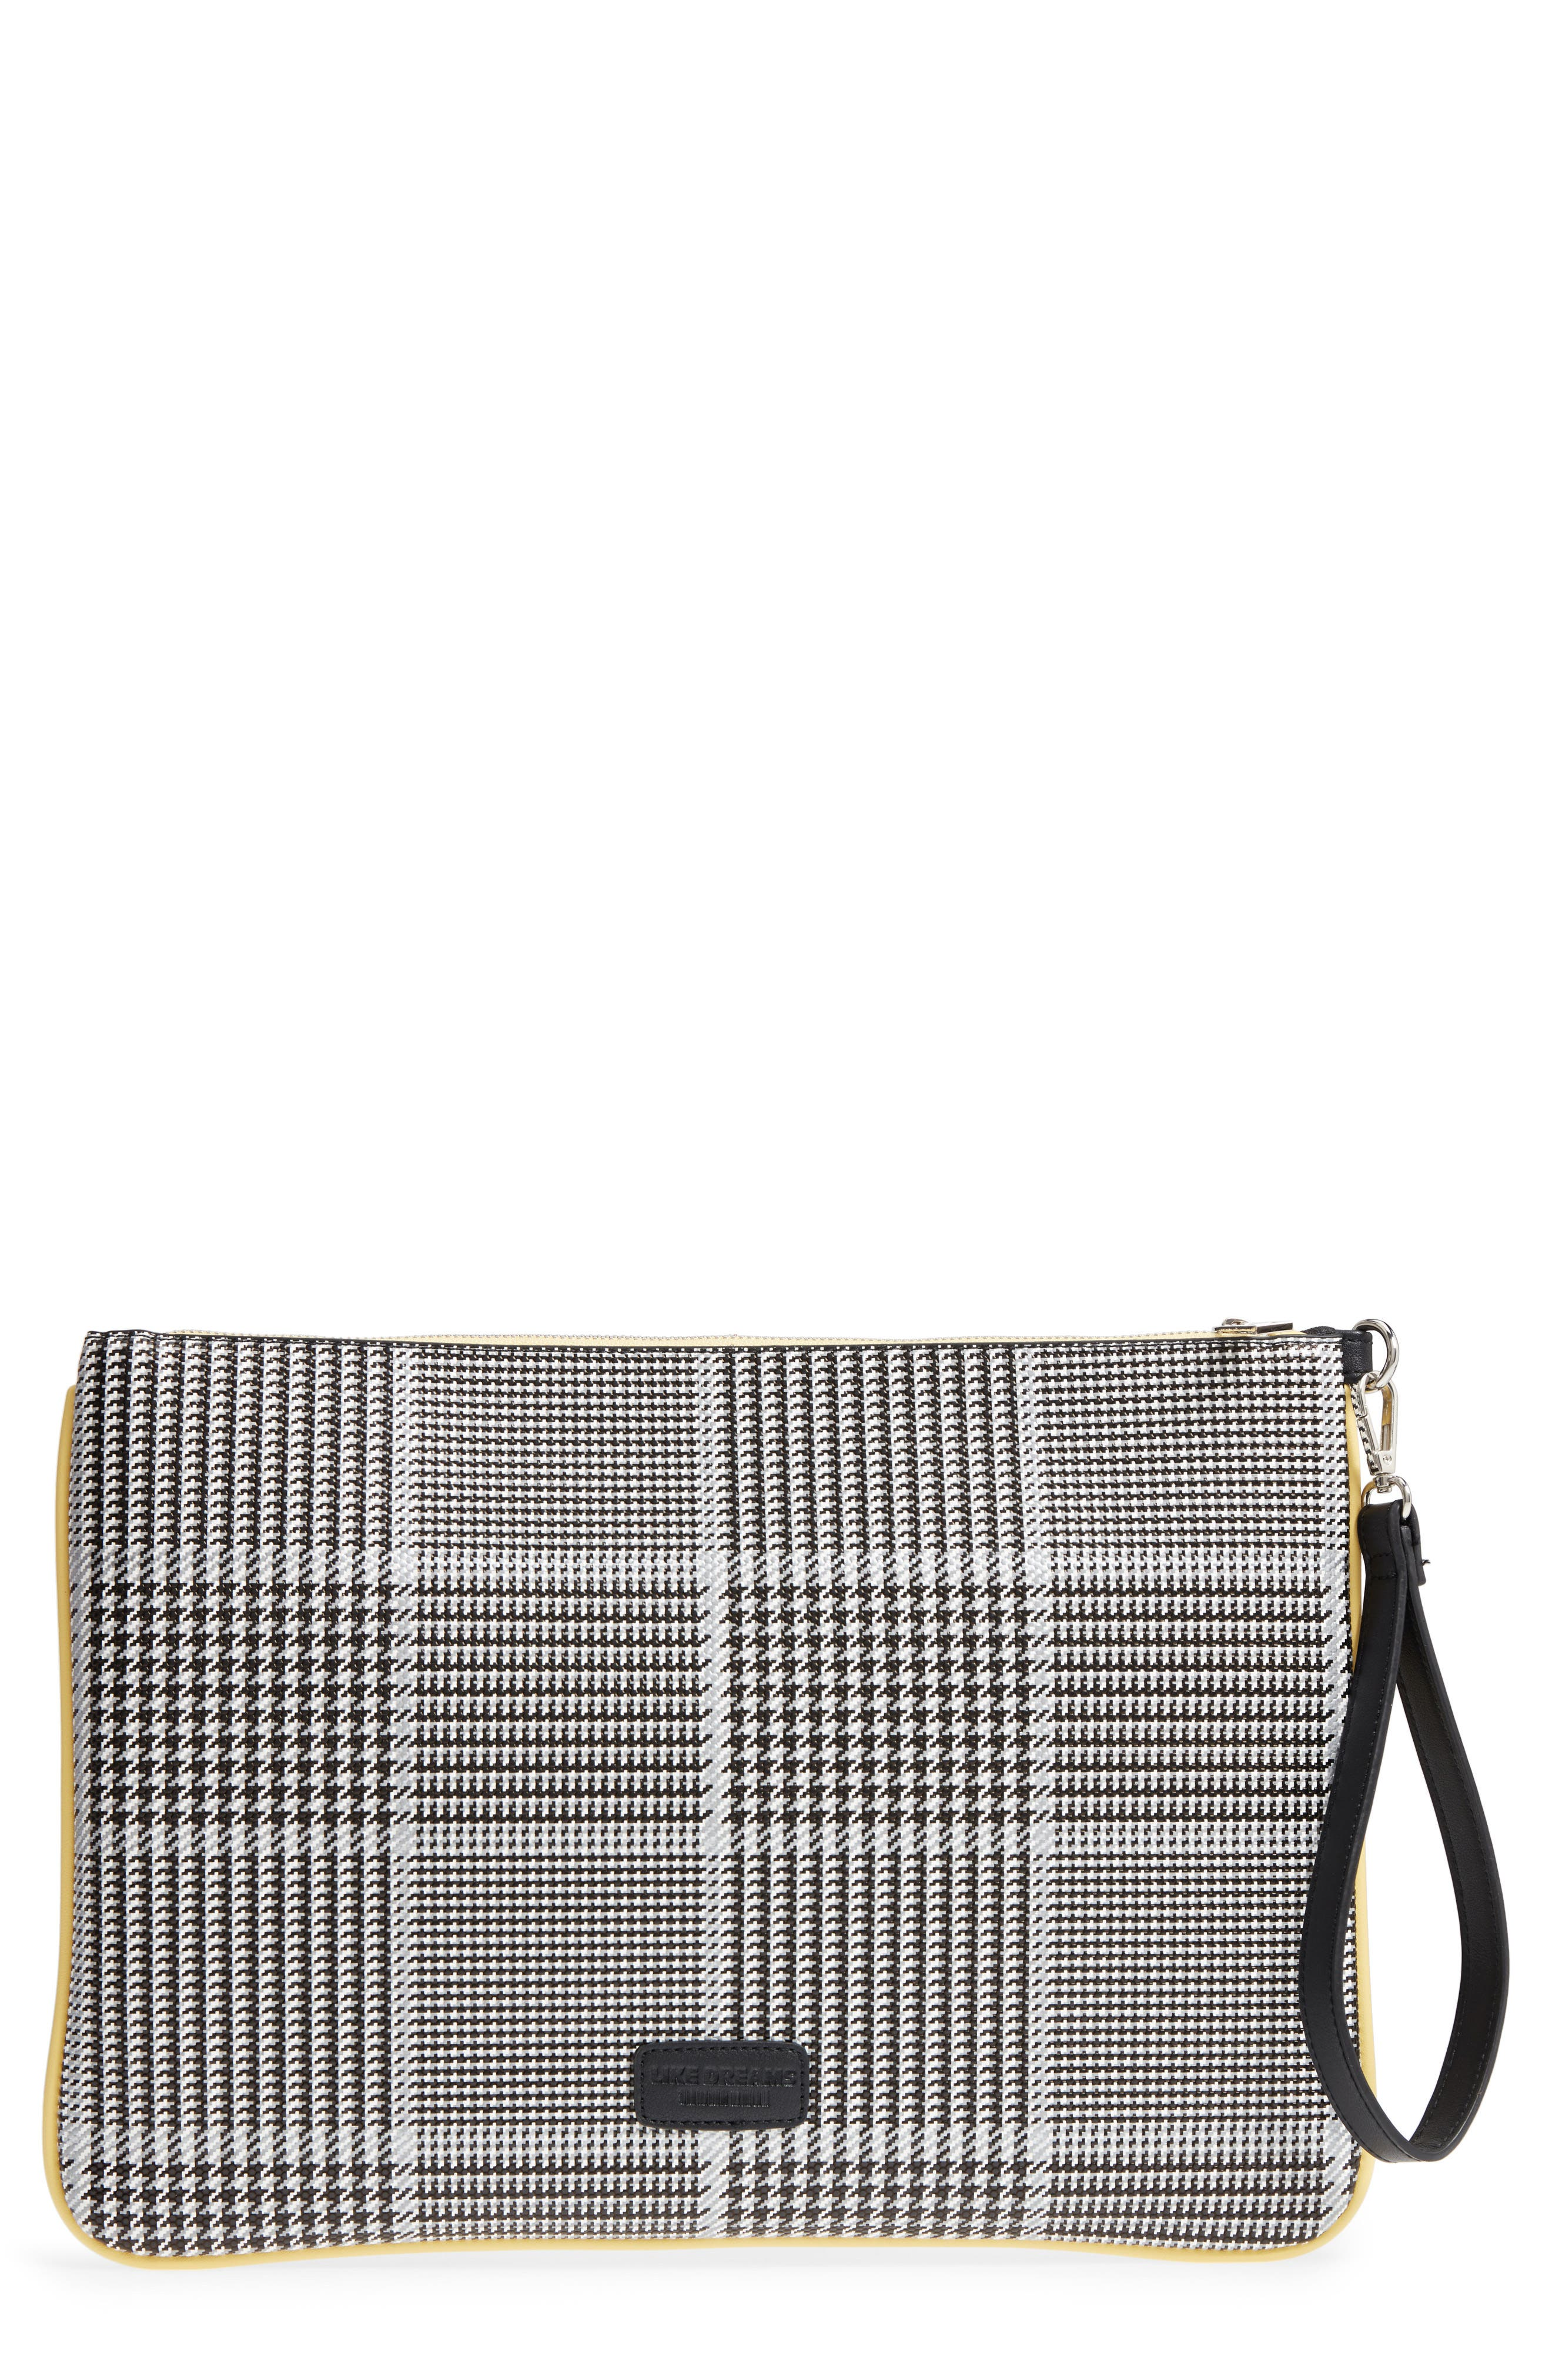 Prince of Wales Check Clutch,                             Main thumbnail 1, color,                             Black Multi